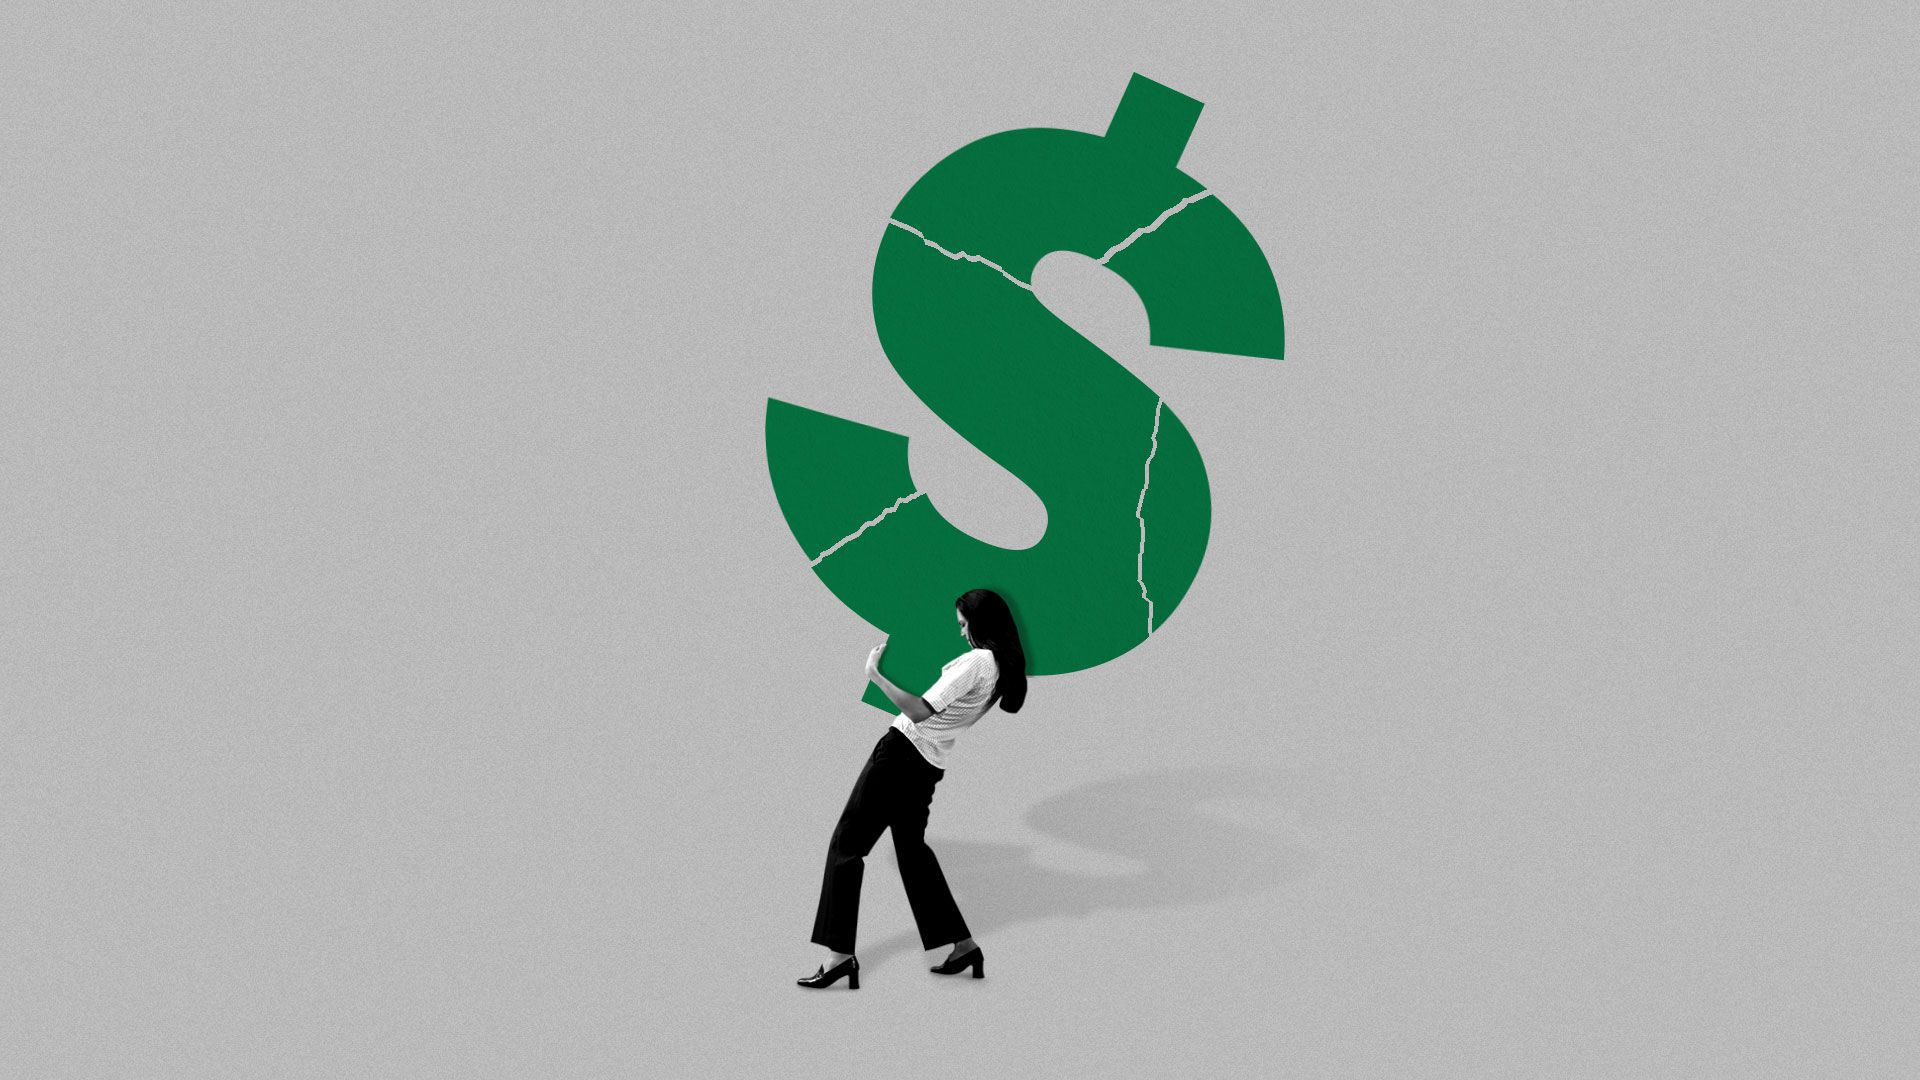 Illustration of woman struggling under the weight of crumbling dollar sign